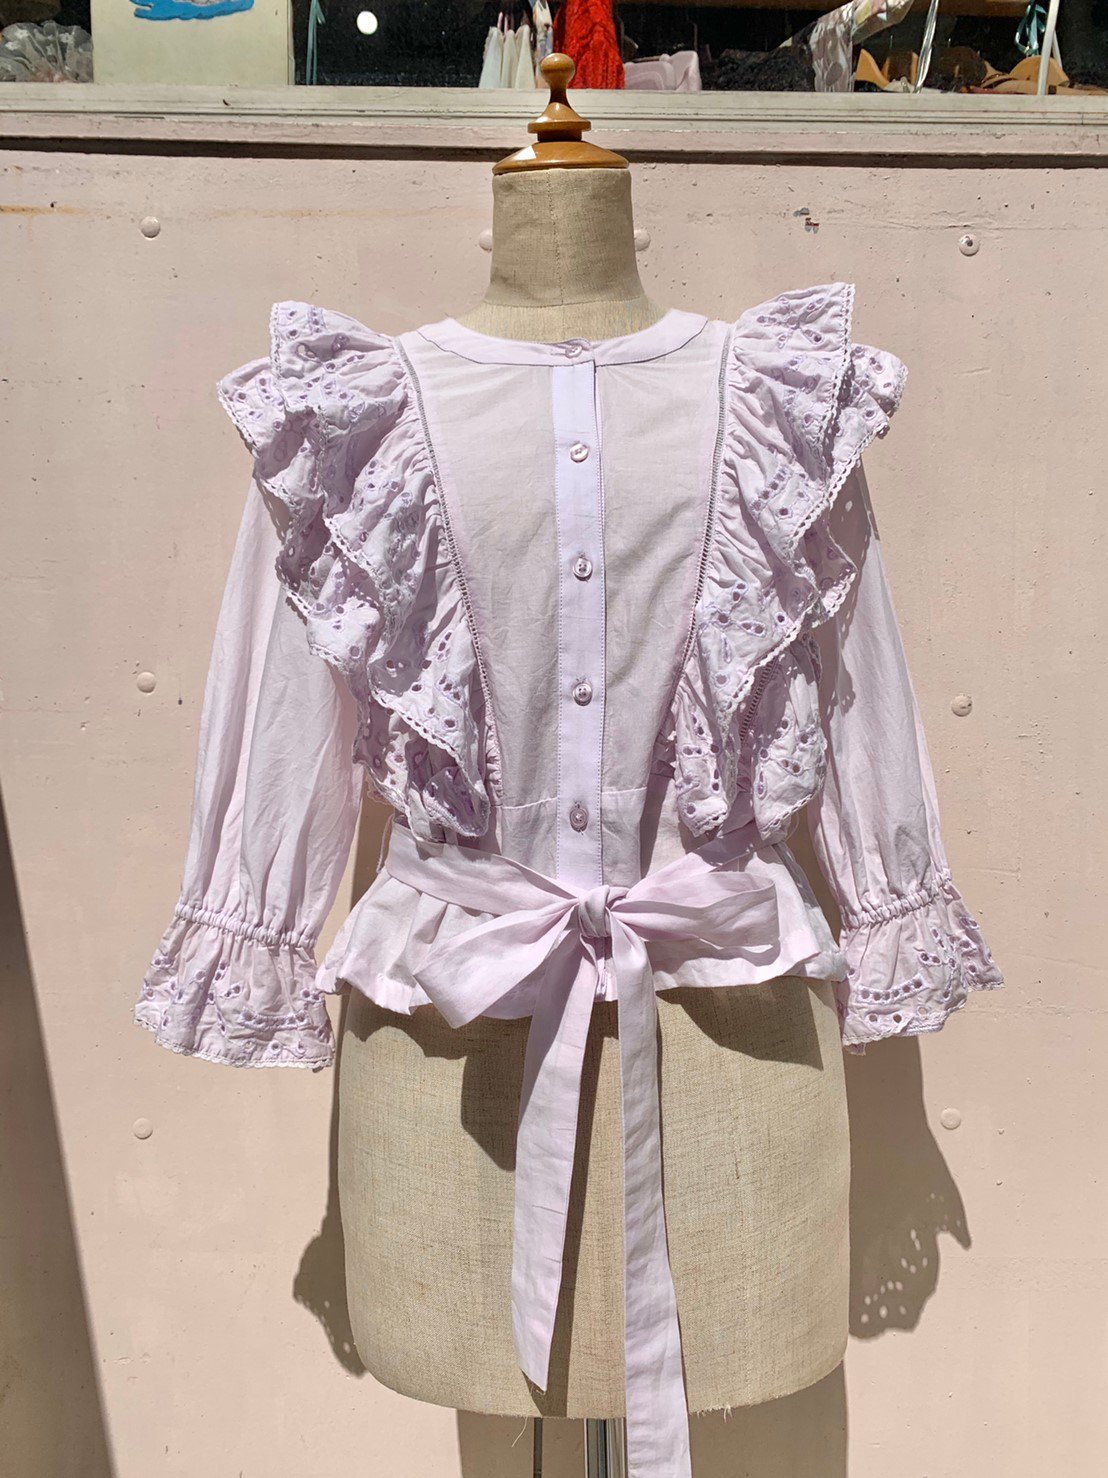 6.lavender frill blouse